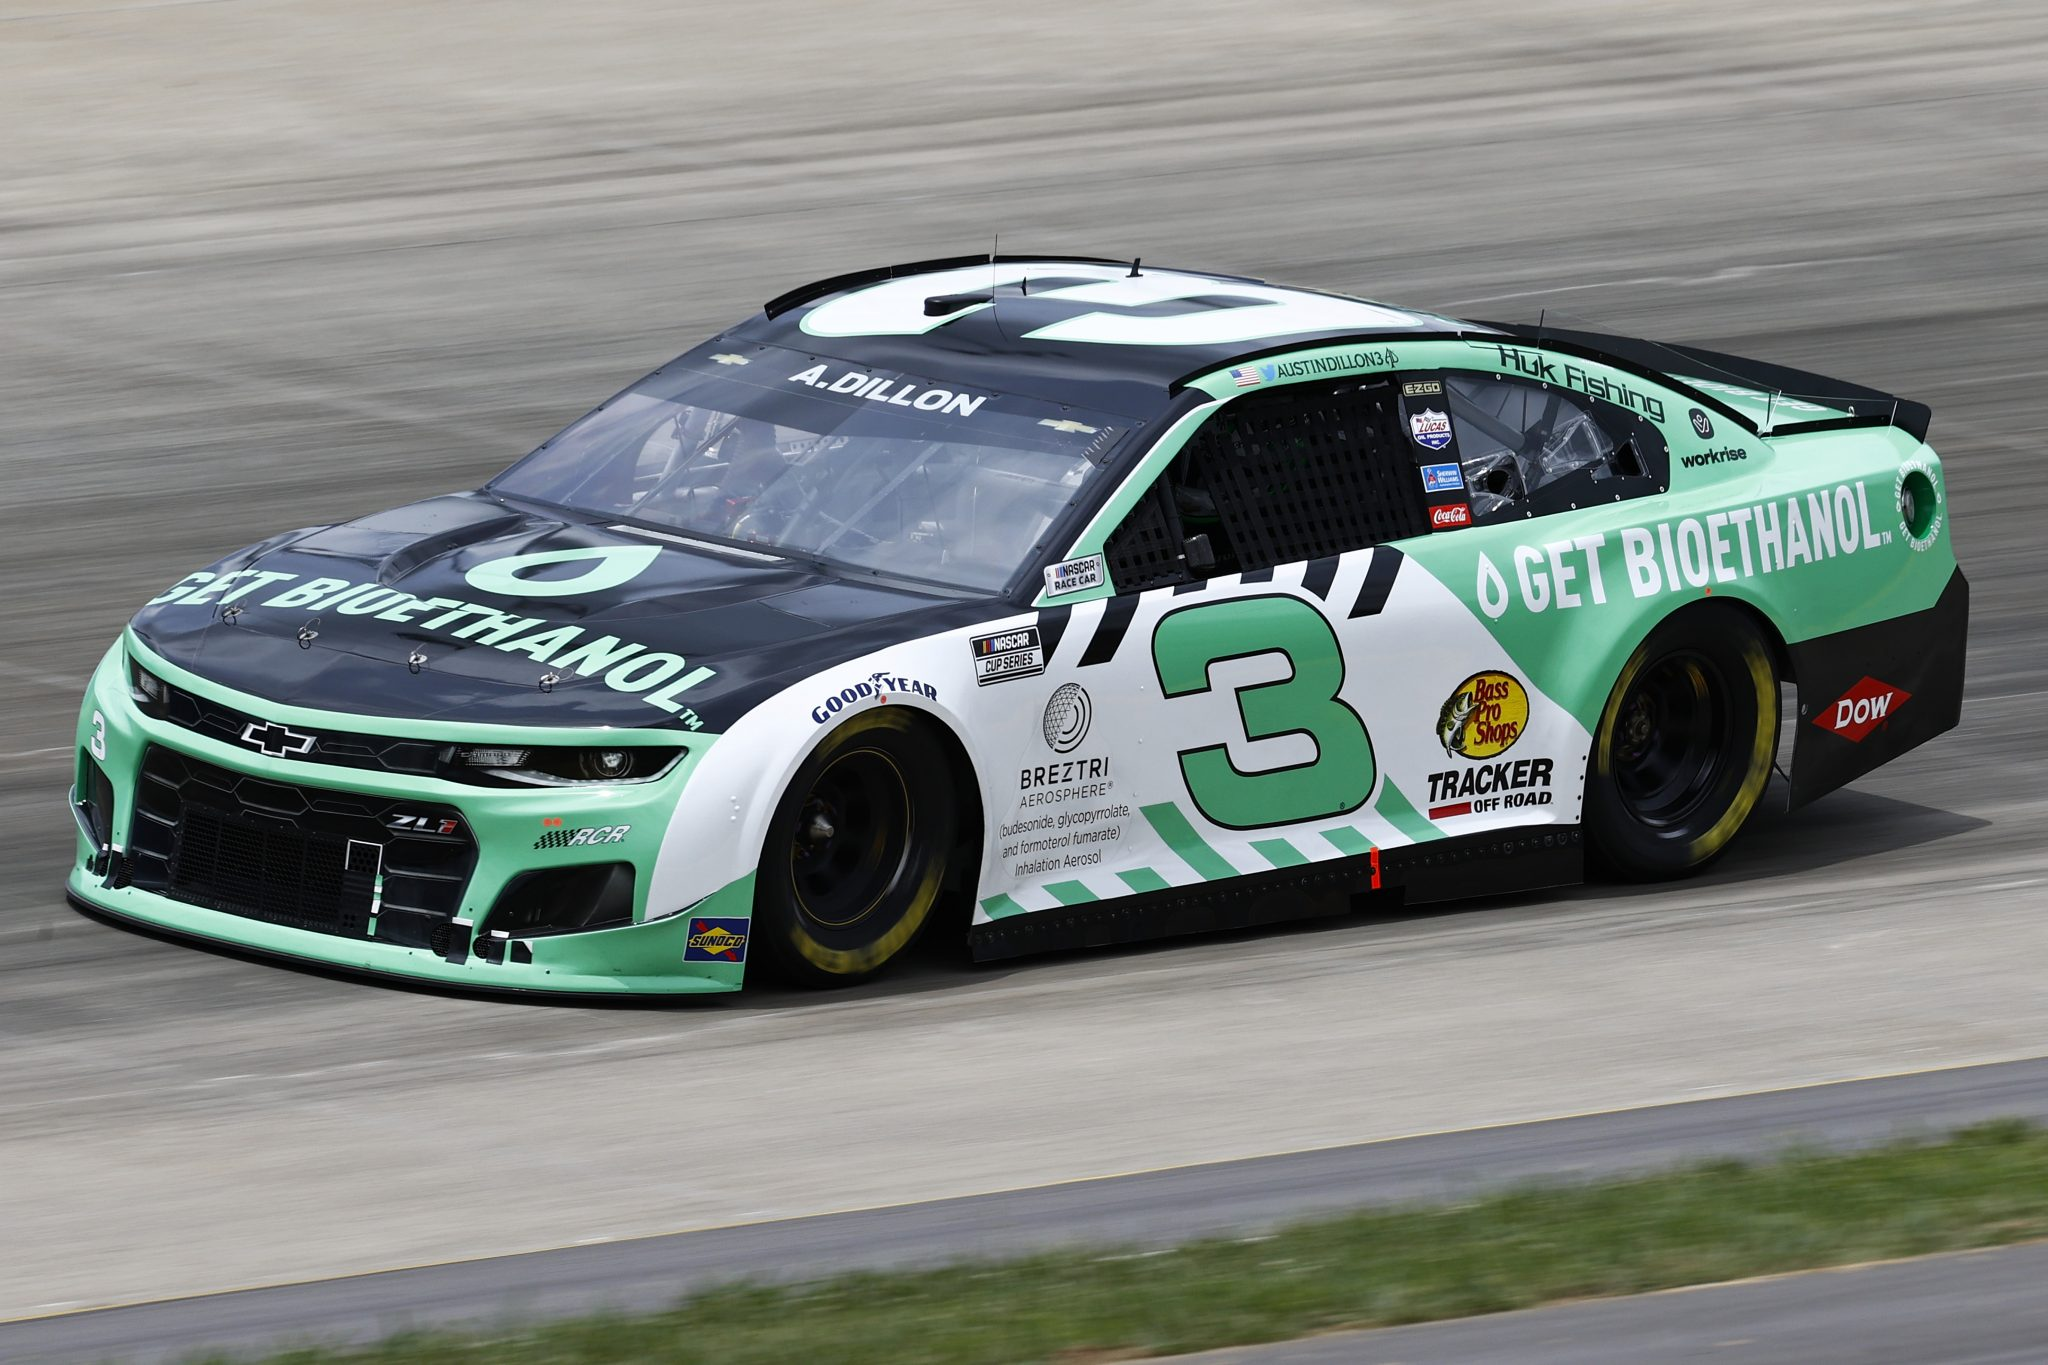 LEBANON, TENNESSEE - JUNE 19: Austin Dillon, driver of the #3 Get Bioethanol Chevrolet, drives during practice for the NASCAR Cup Series Ally 400 at Nashville Superspeedway on June 19, 2021 in Lebanon, Tennessee. (Photo by Jared C. Tilton/Getty Images)   Getty Images